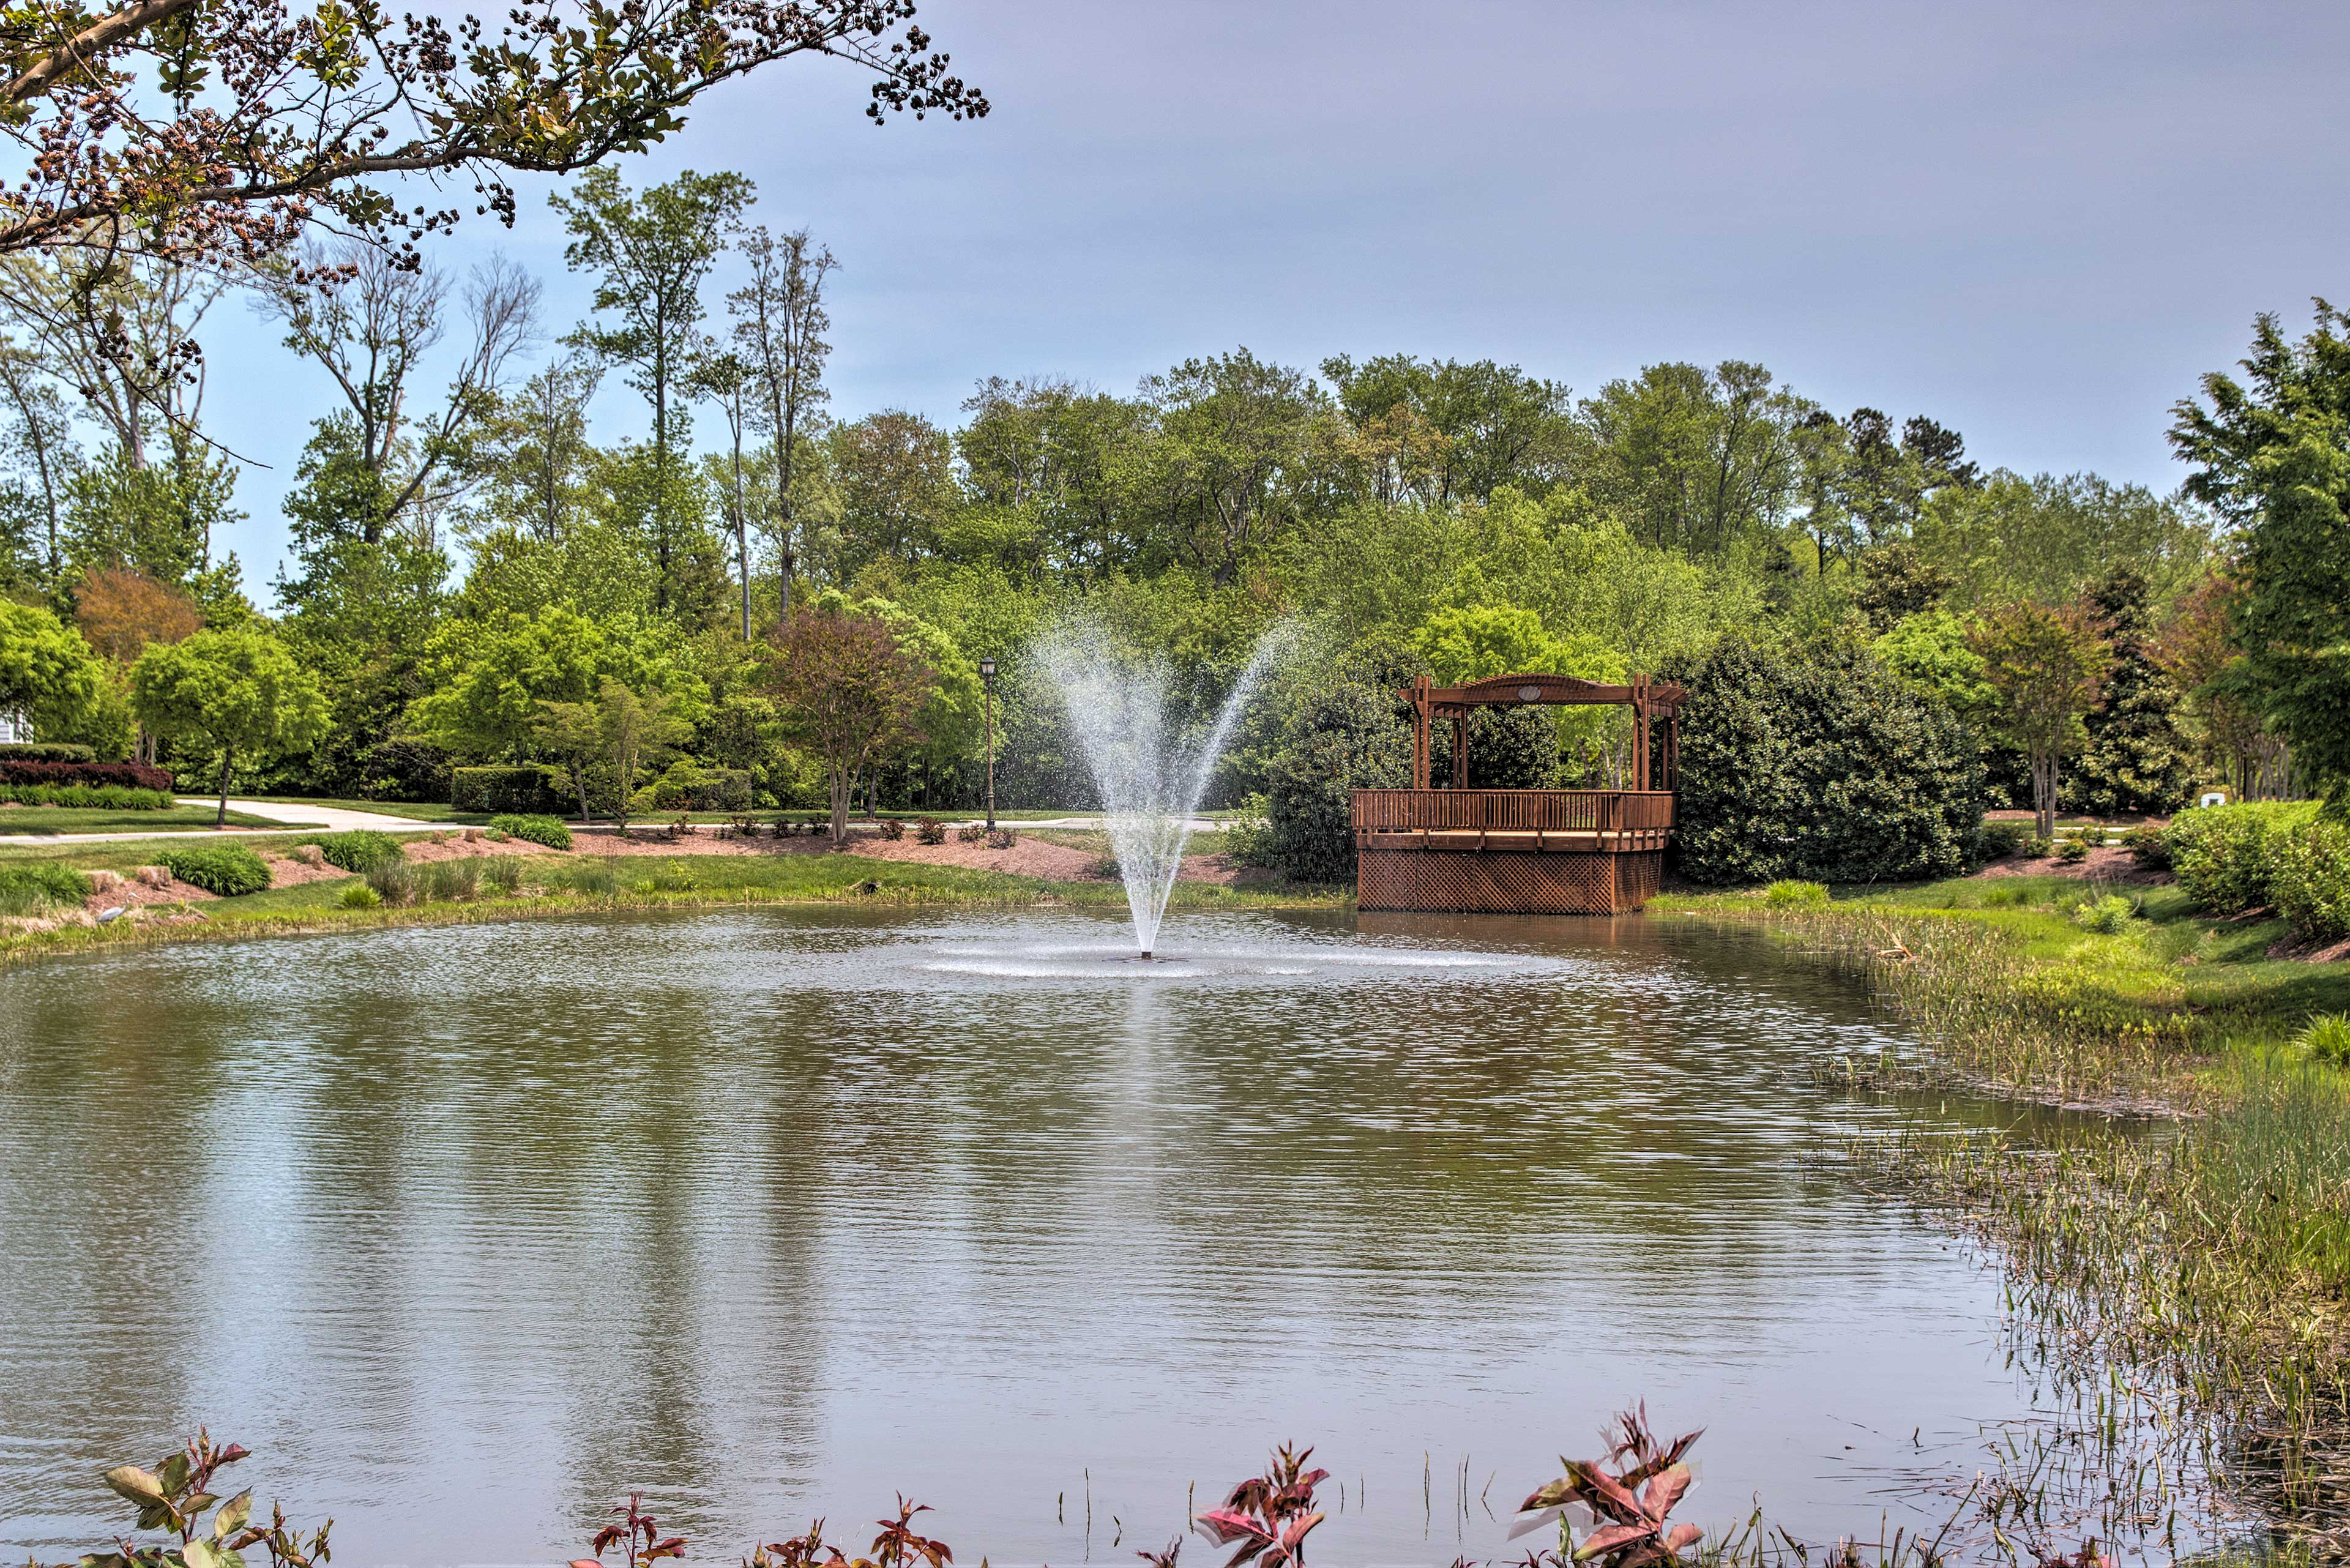 Stroll over to the nearby pond with a fountain and pergola.